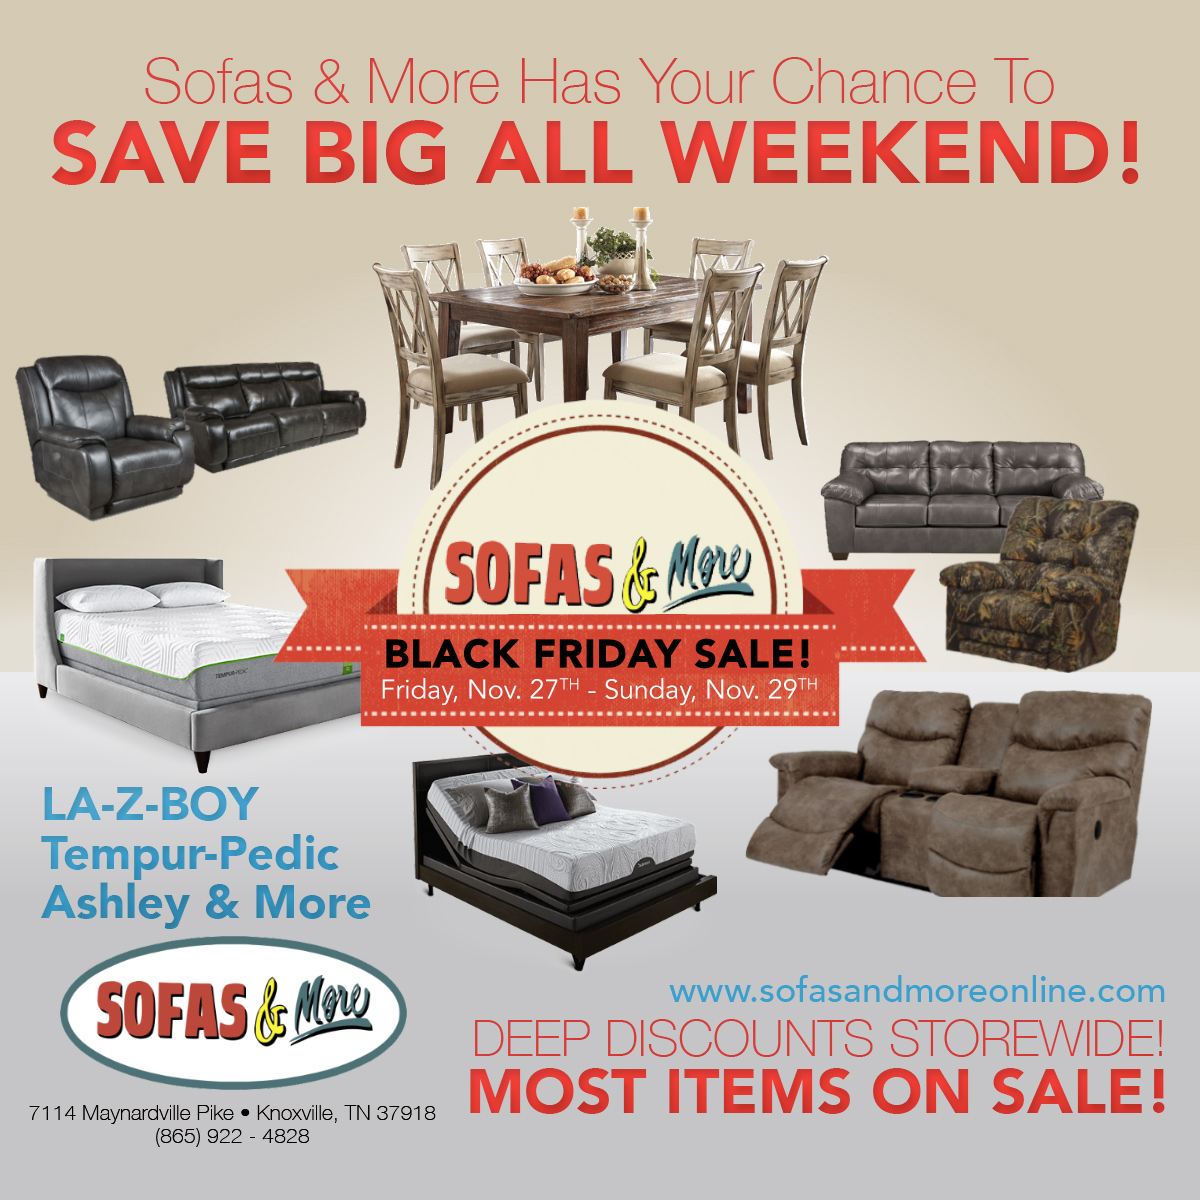 sofas & more's black friday sale